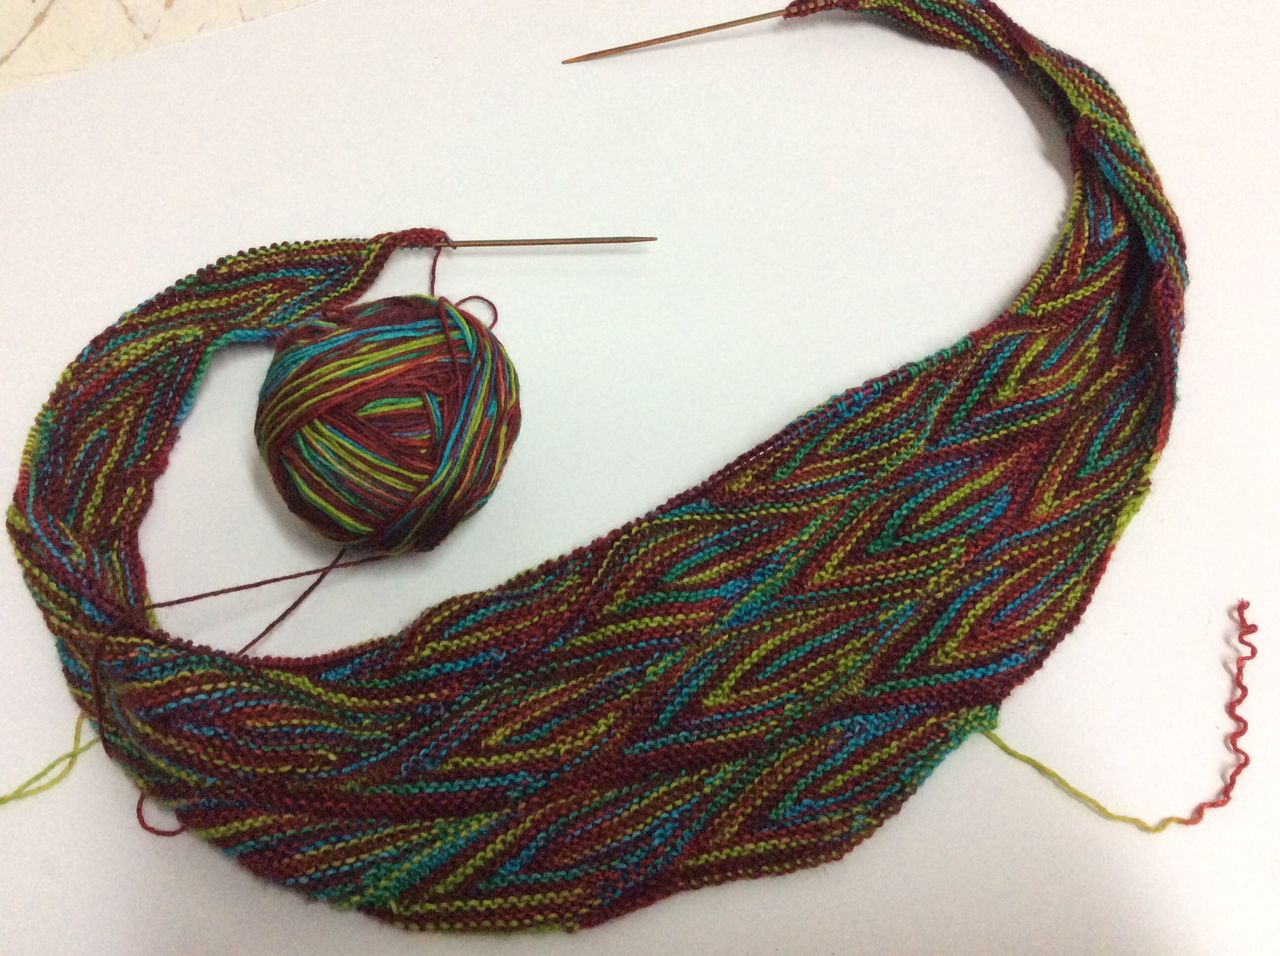 Vom Winde verweht Shawl in progress